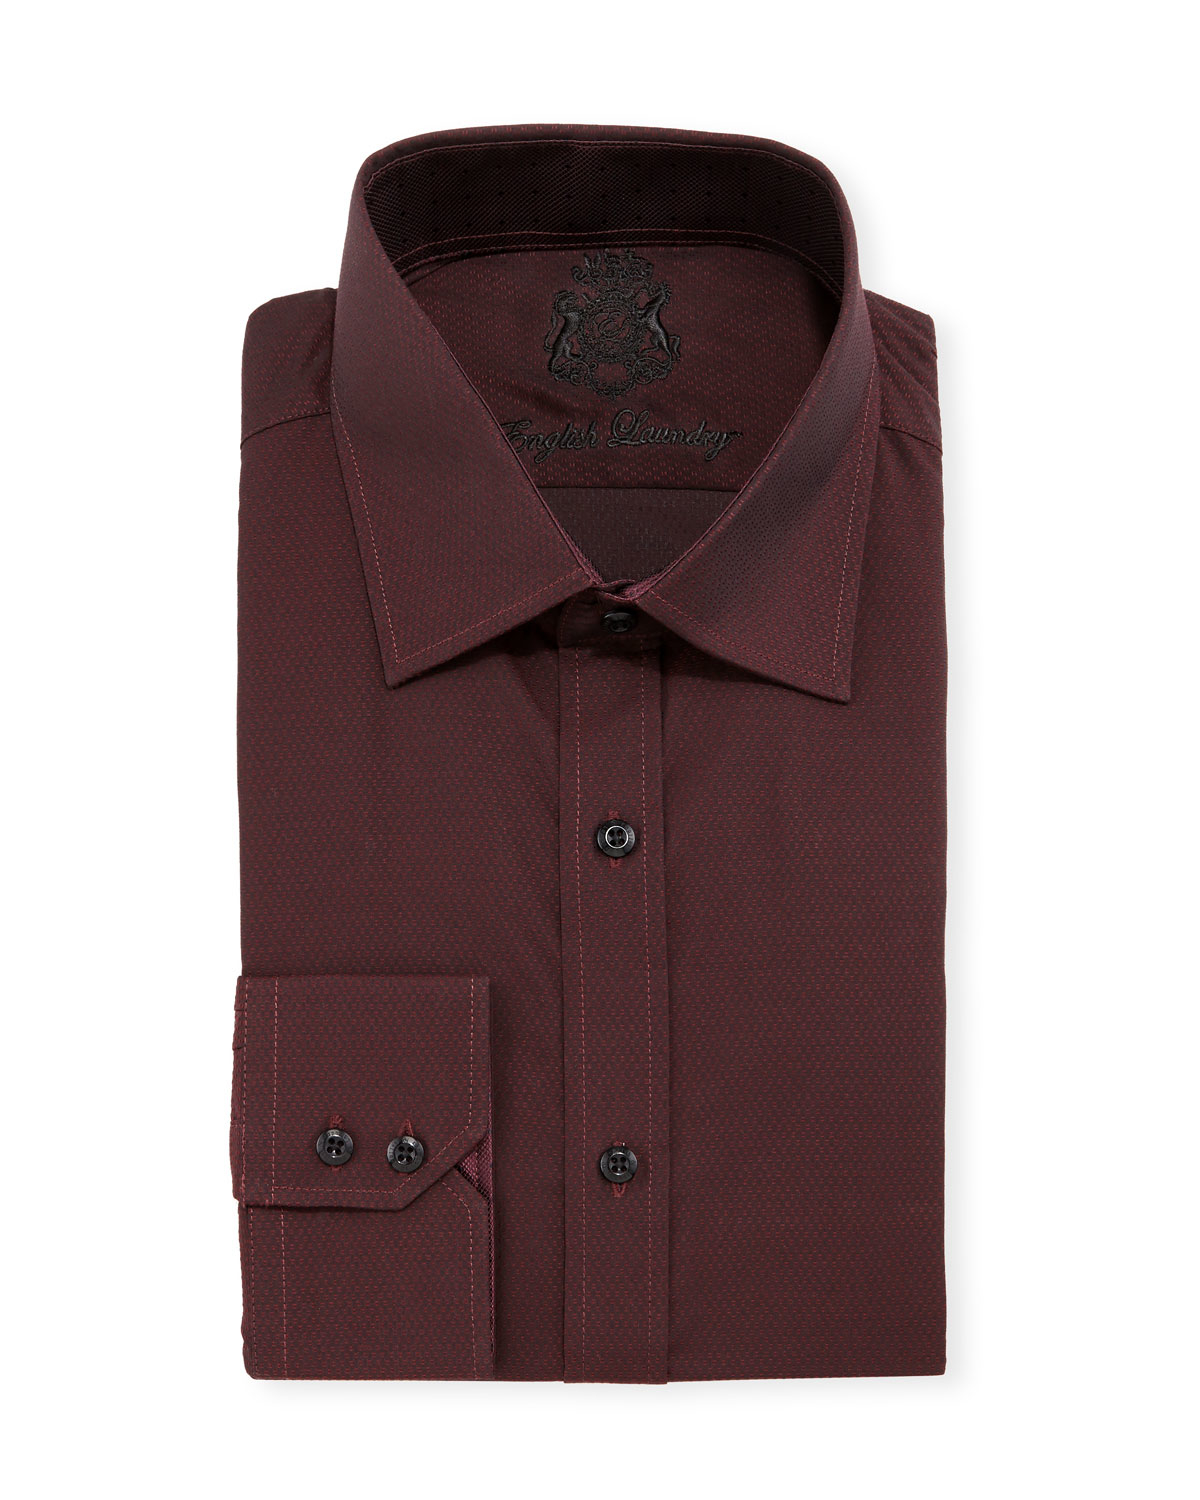 English laundry Textured Long-sleeve Dress Shirt in Red ...